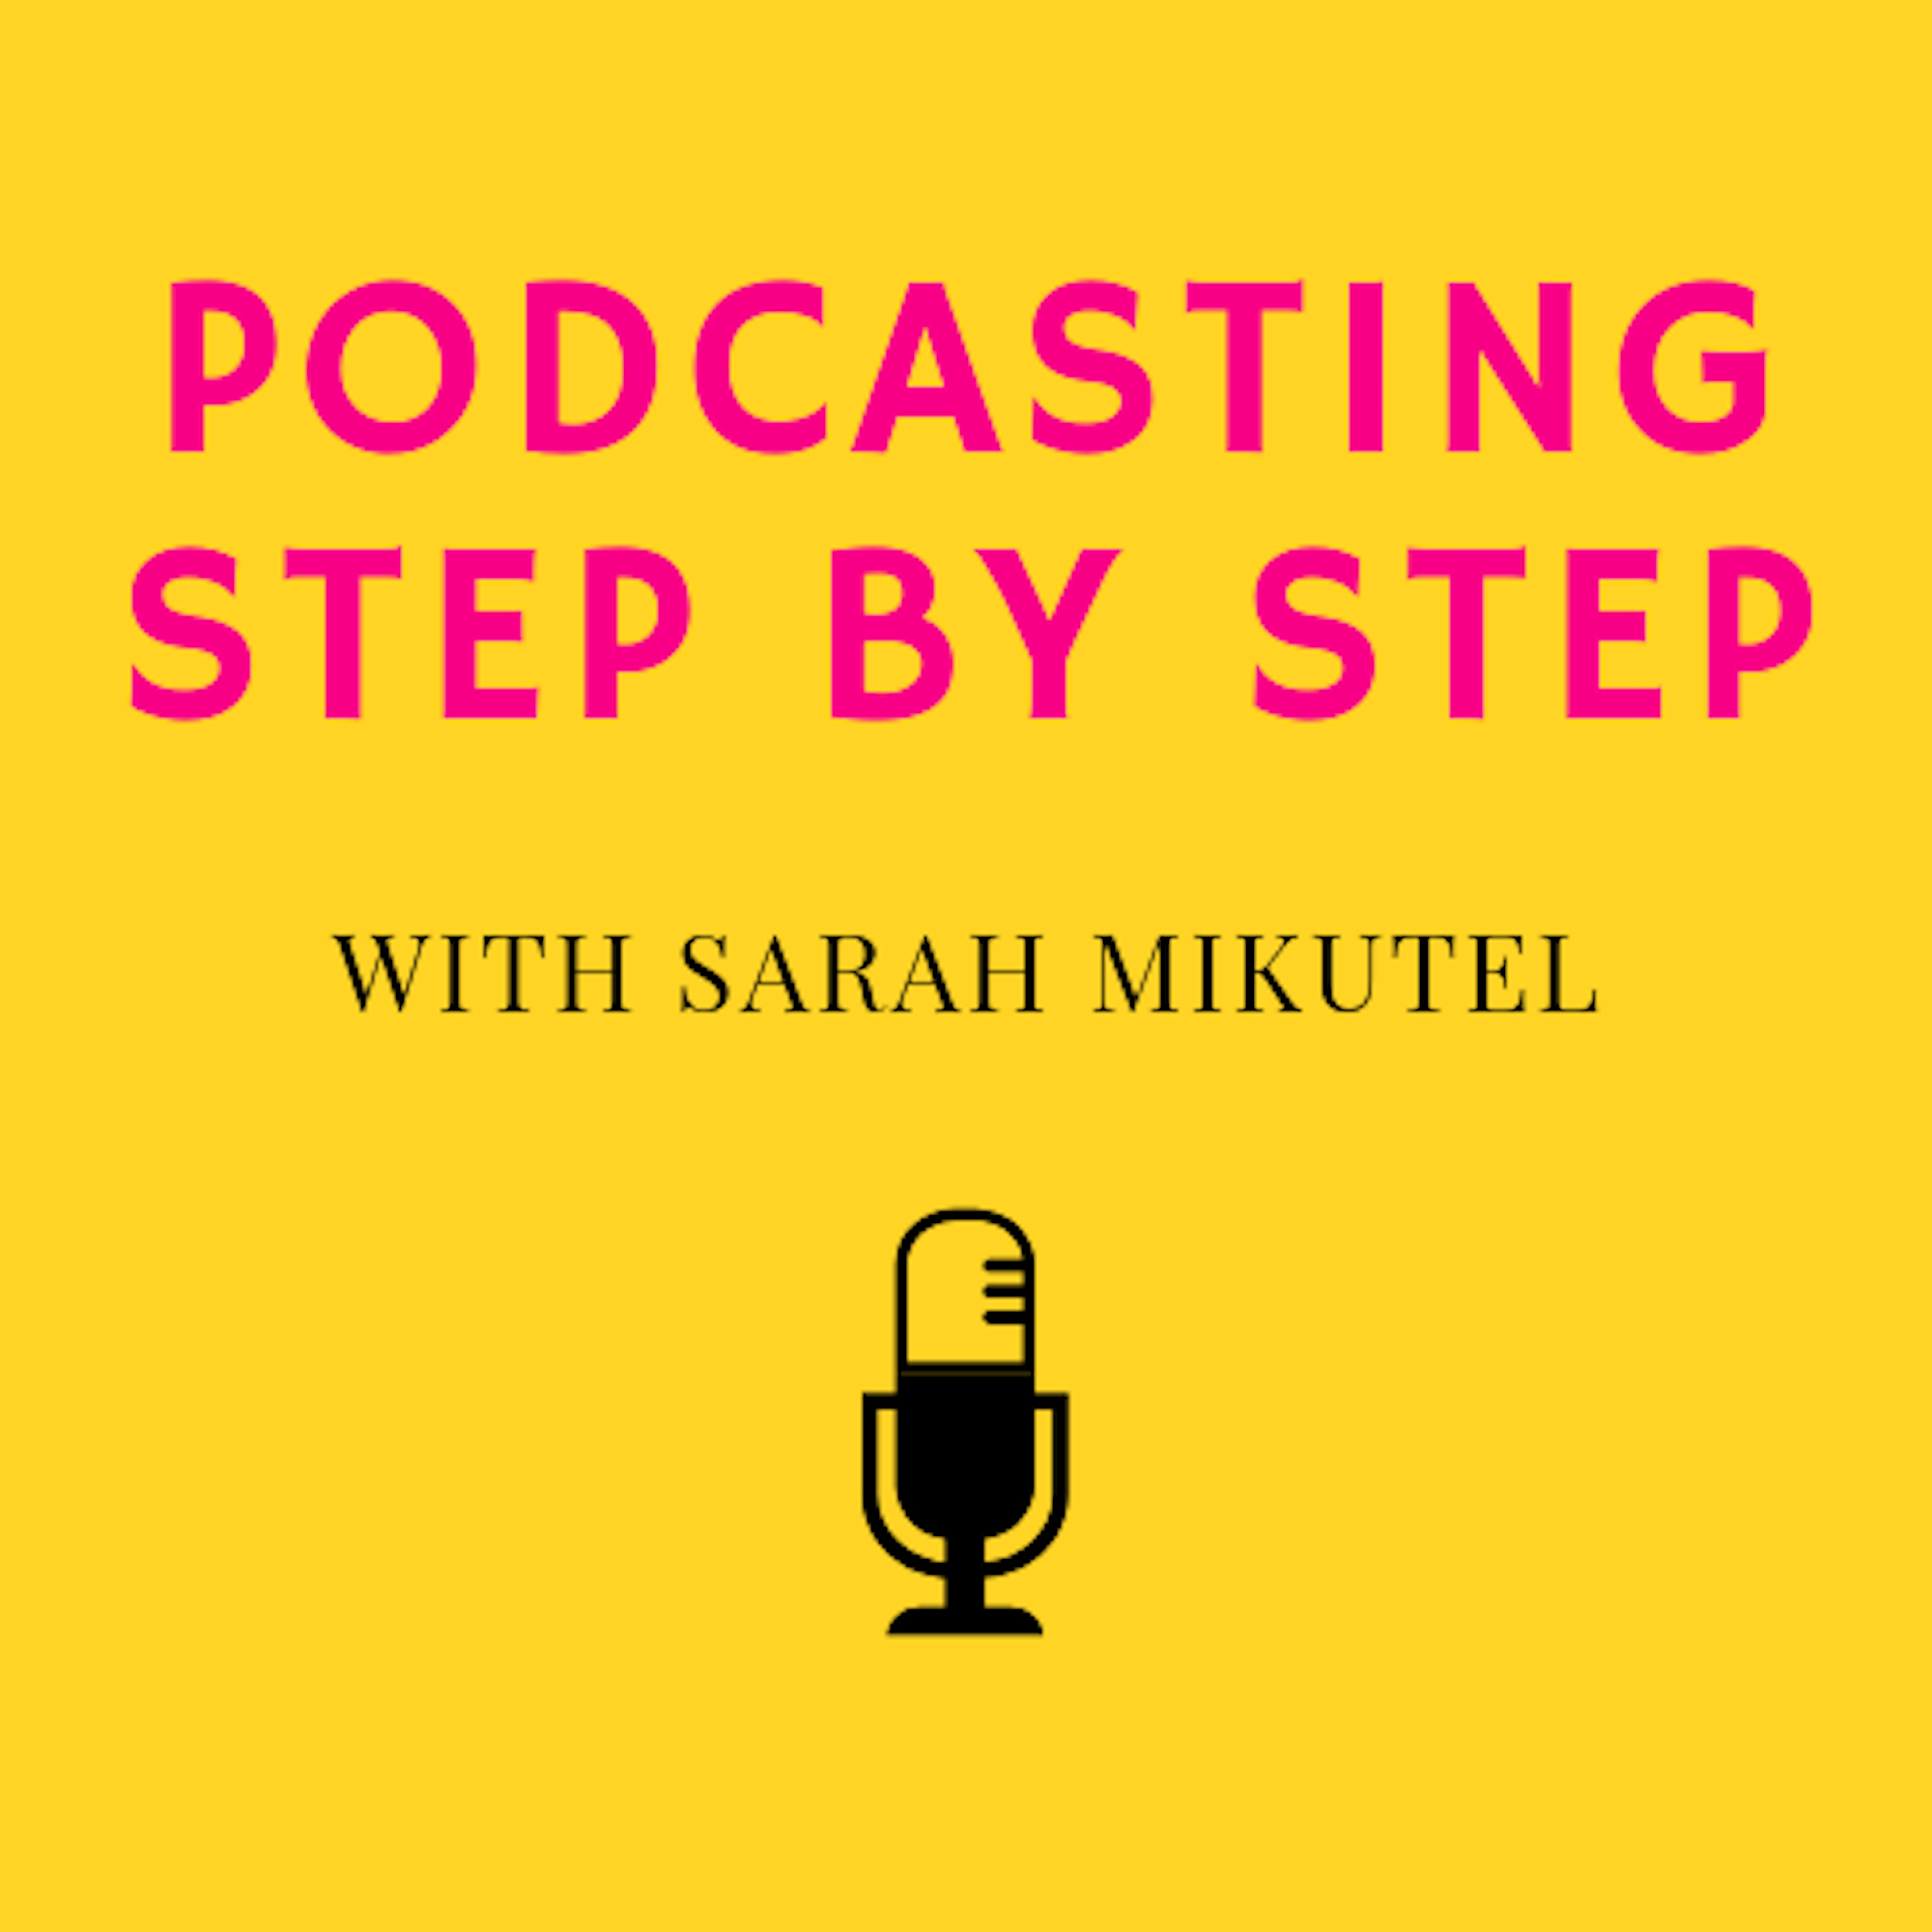 Podcasting Step by Step show art